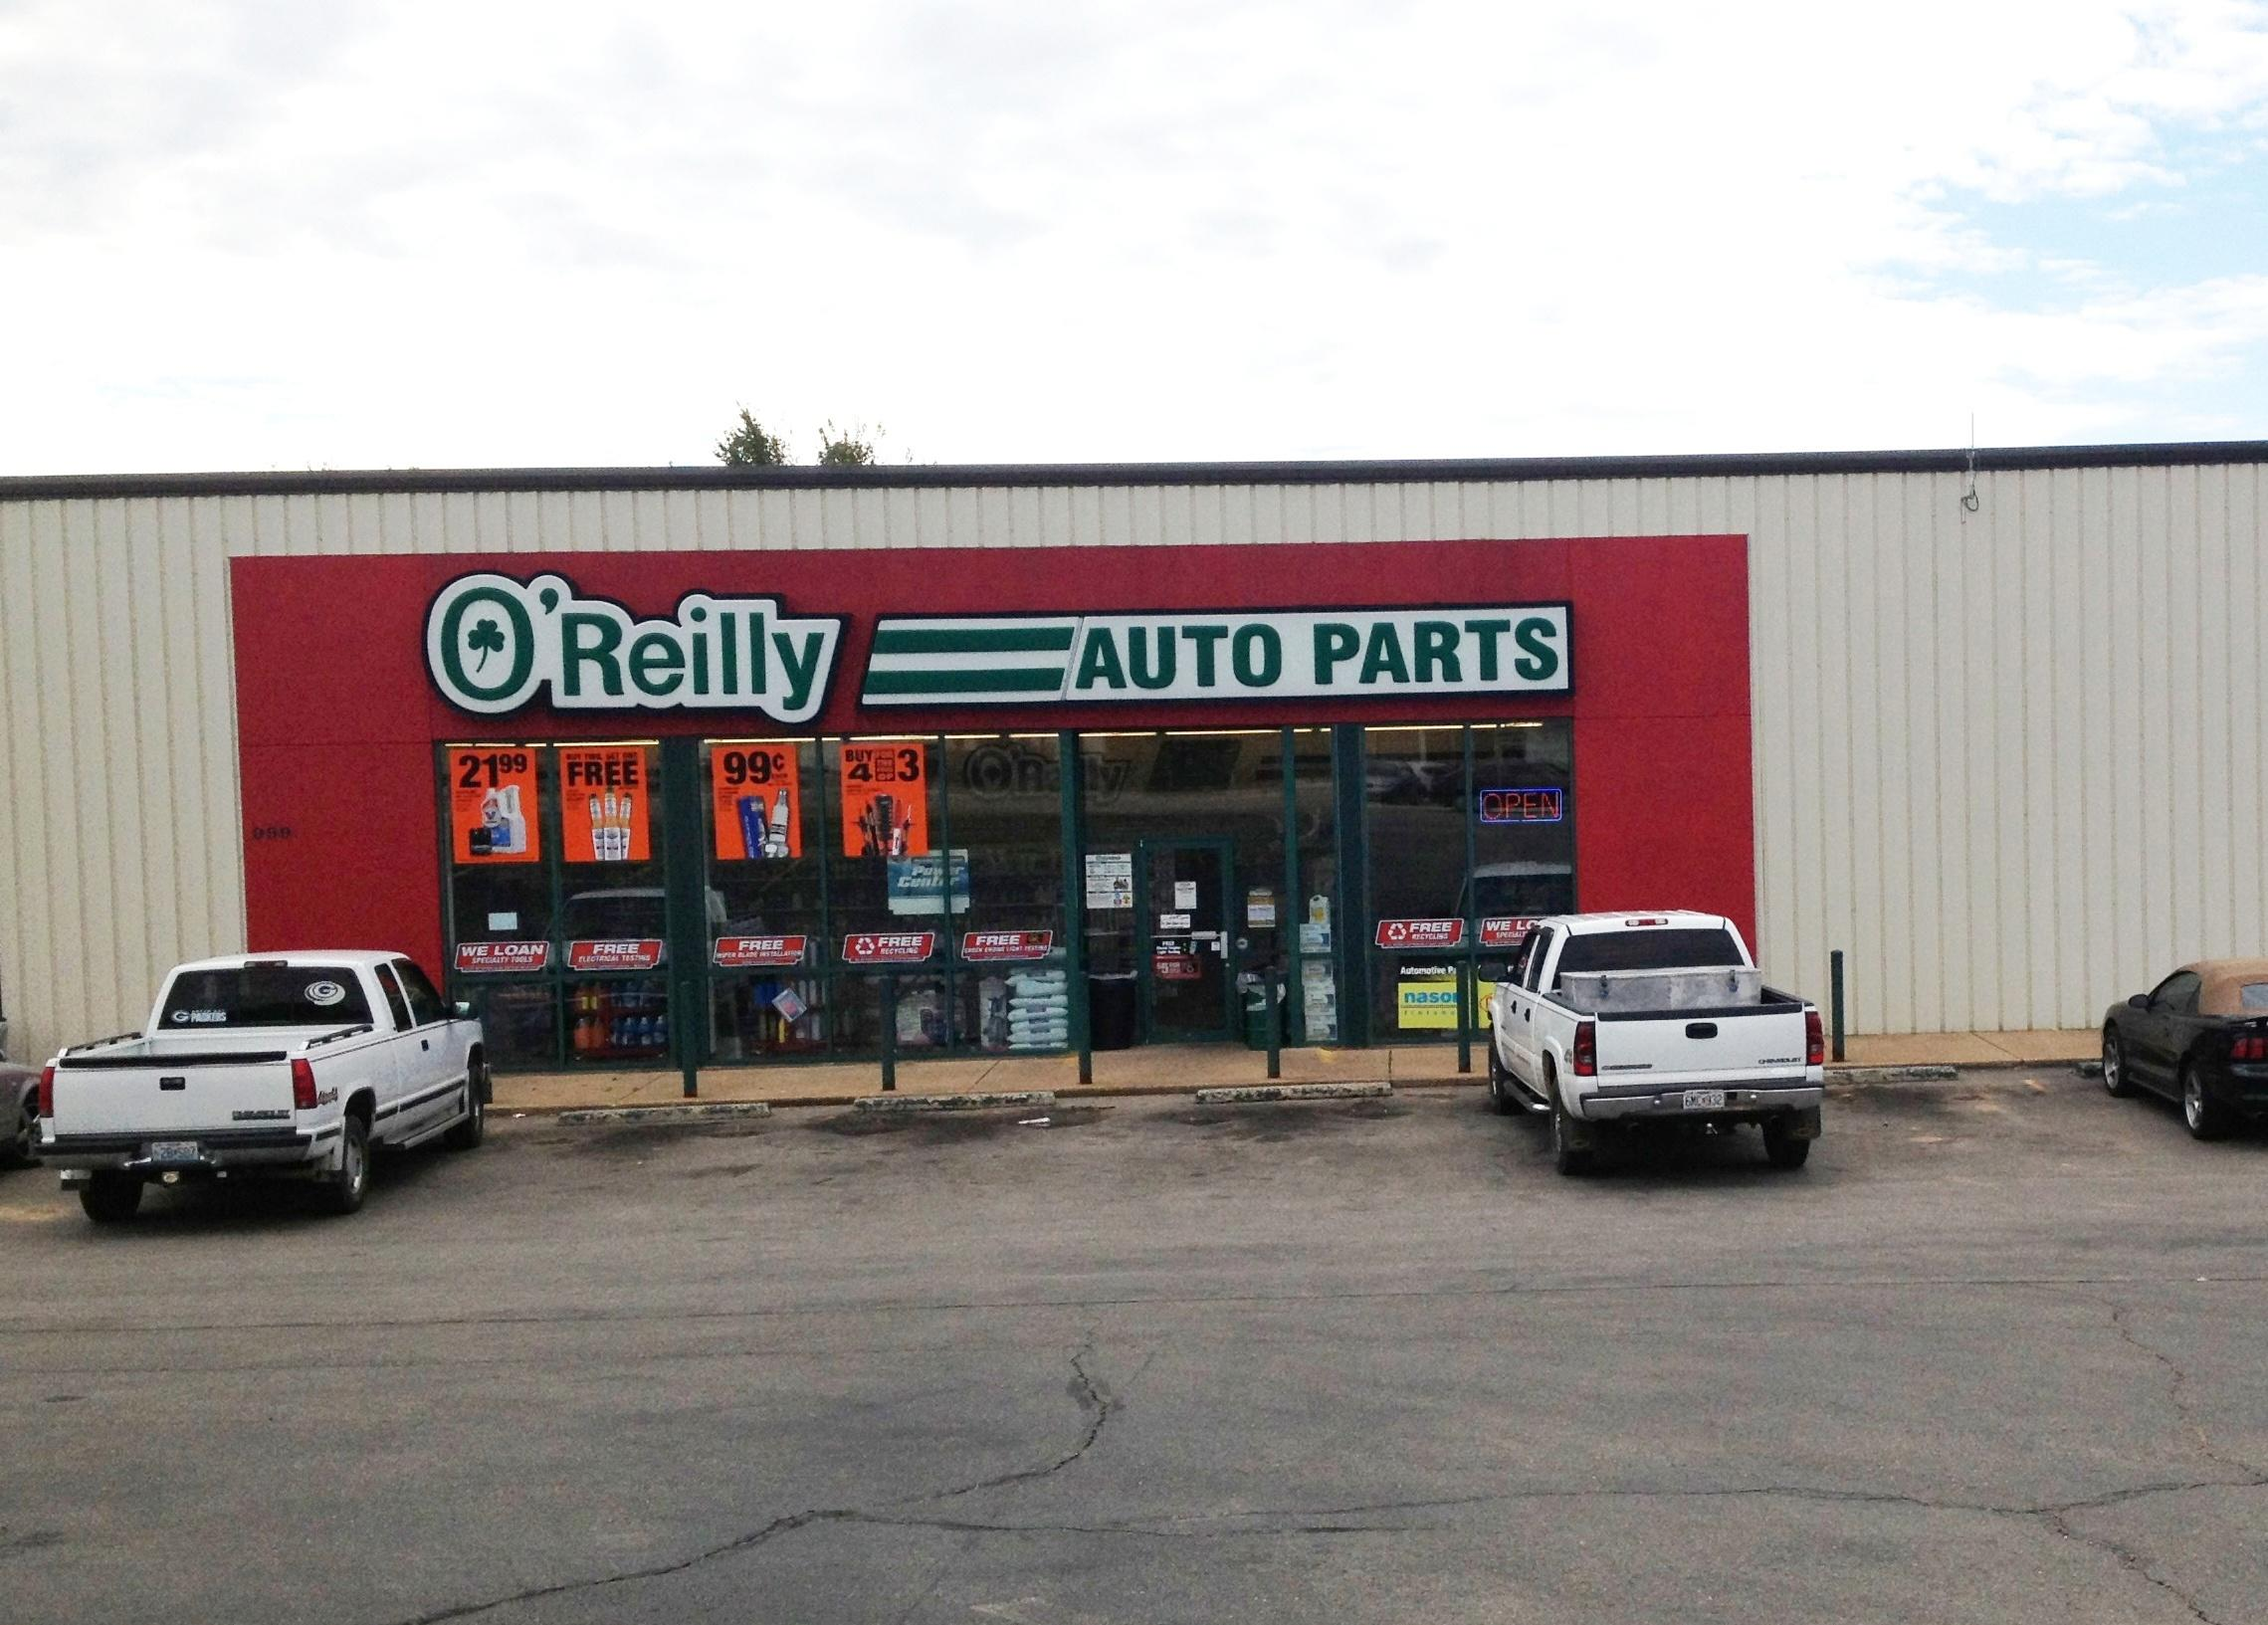 image relating to O Reilly in Store Printable Coupons titled Oreillys vehicle pieces on-line coupon codes - Discount coupons for child